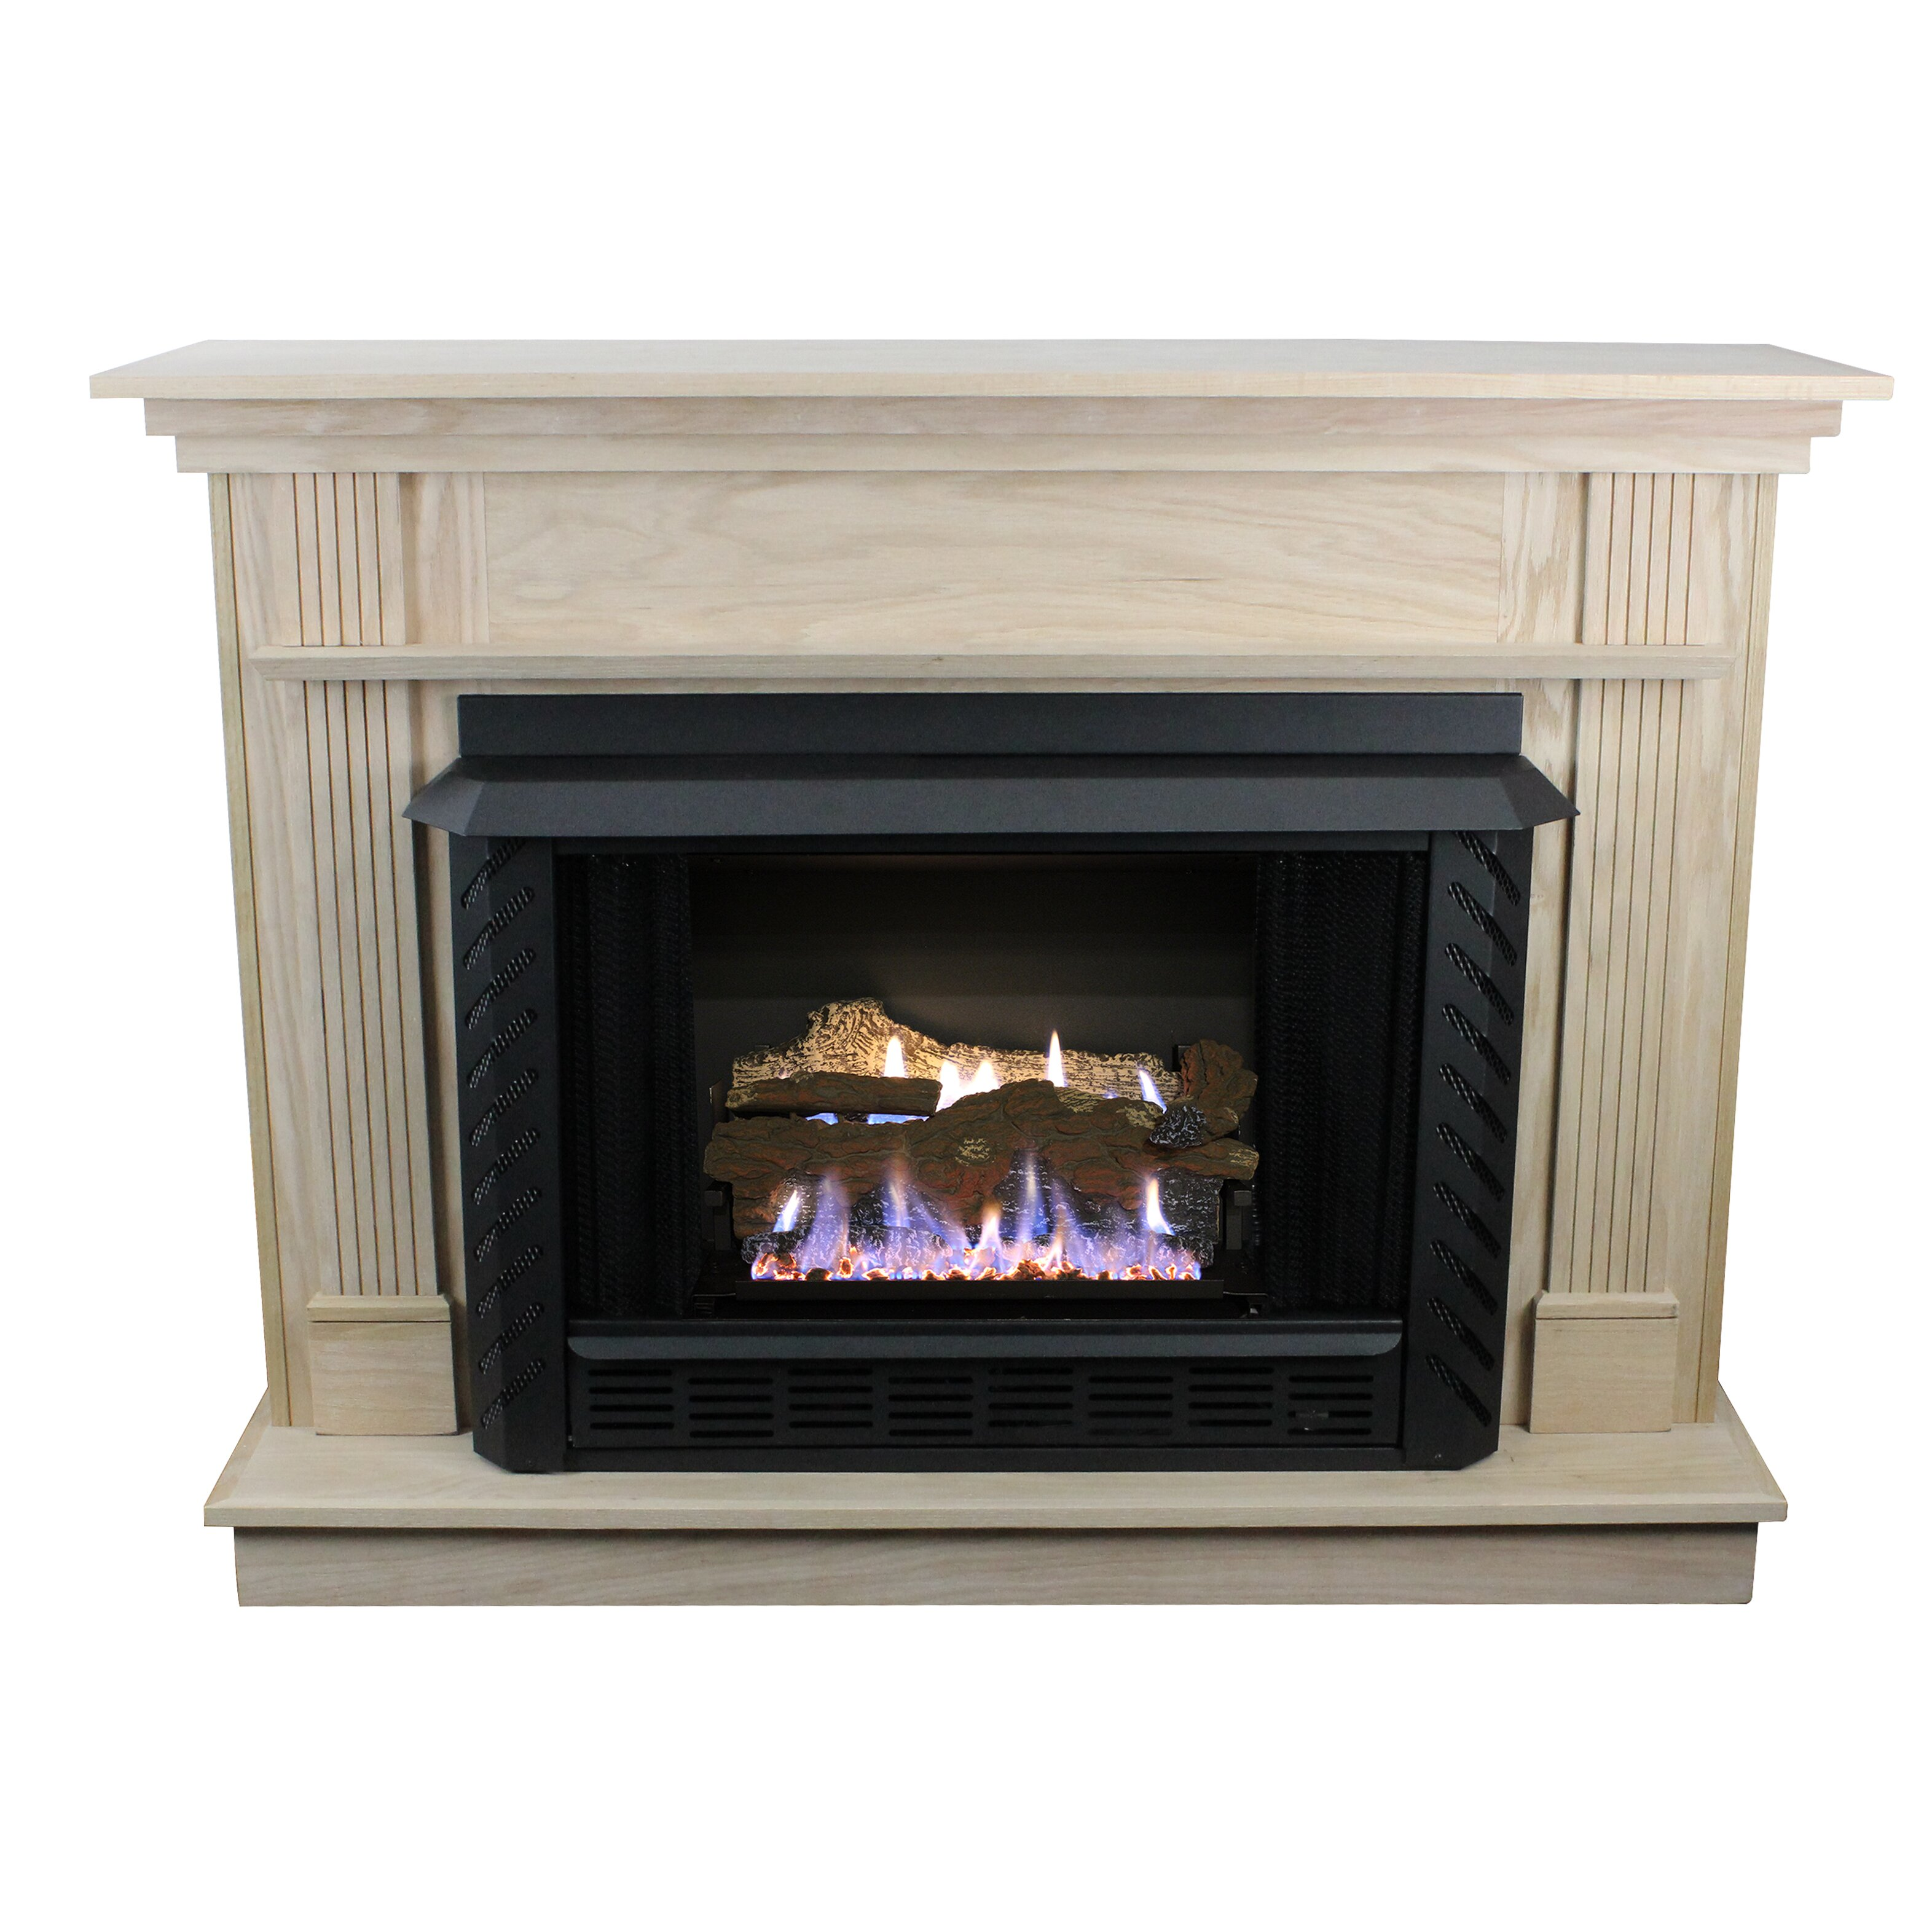 Gas fireplace insert reviews - Hearth Vent Propane Fireplace Insert Reviews Wayfair Peterson Gas Fireplace Reviews